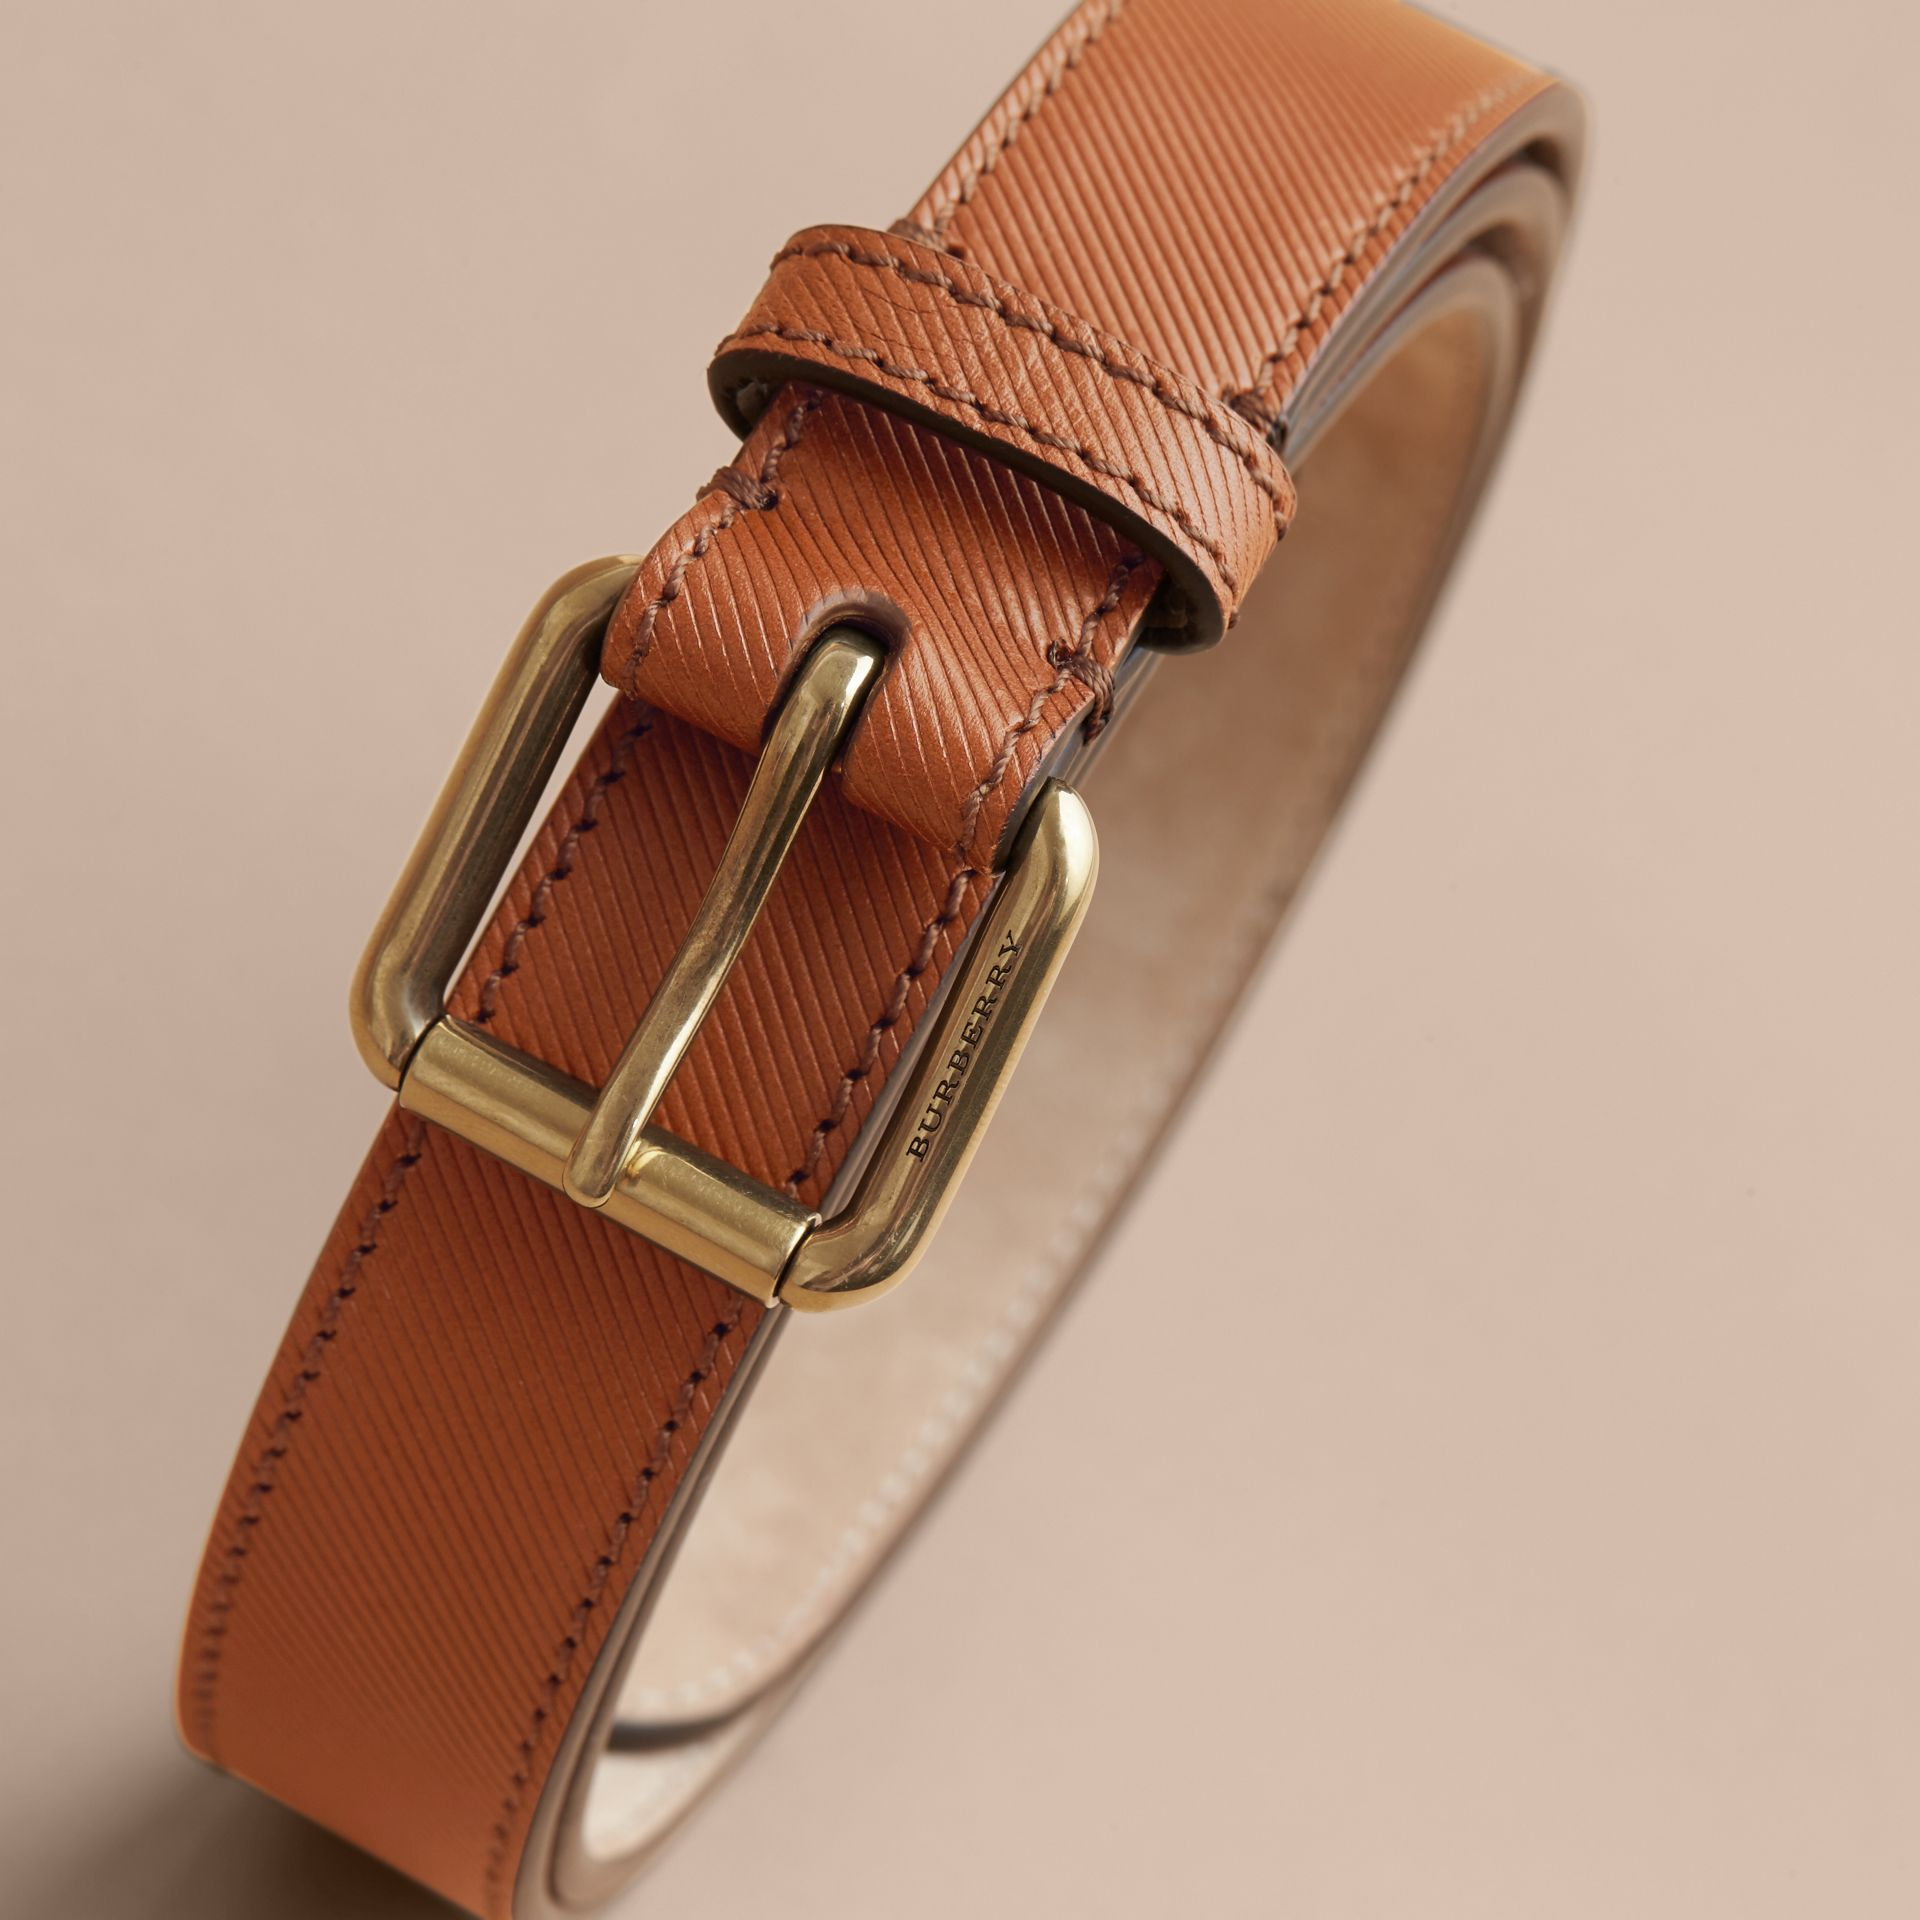 Trench Leather Belt in Tan - Men | Burberry United Kingdom - gallery image 4